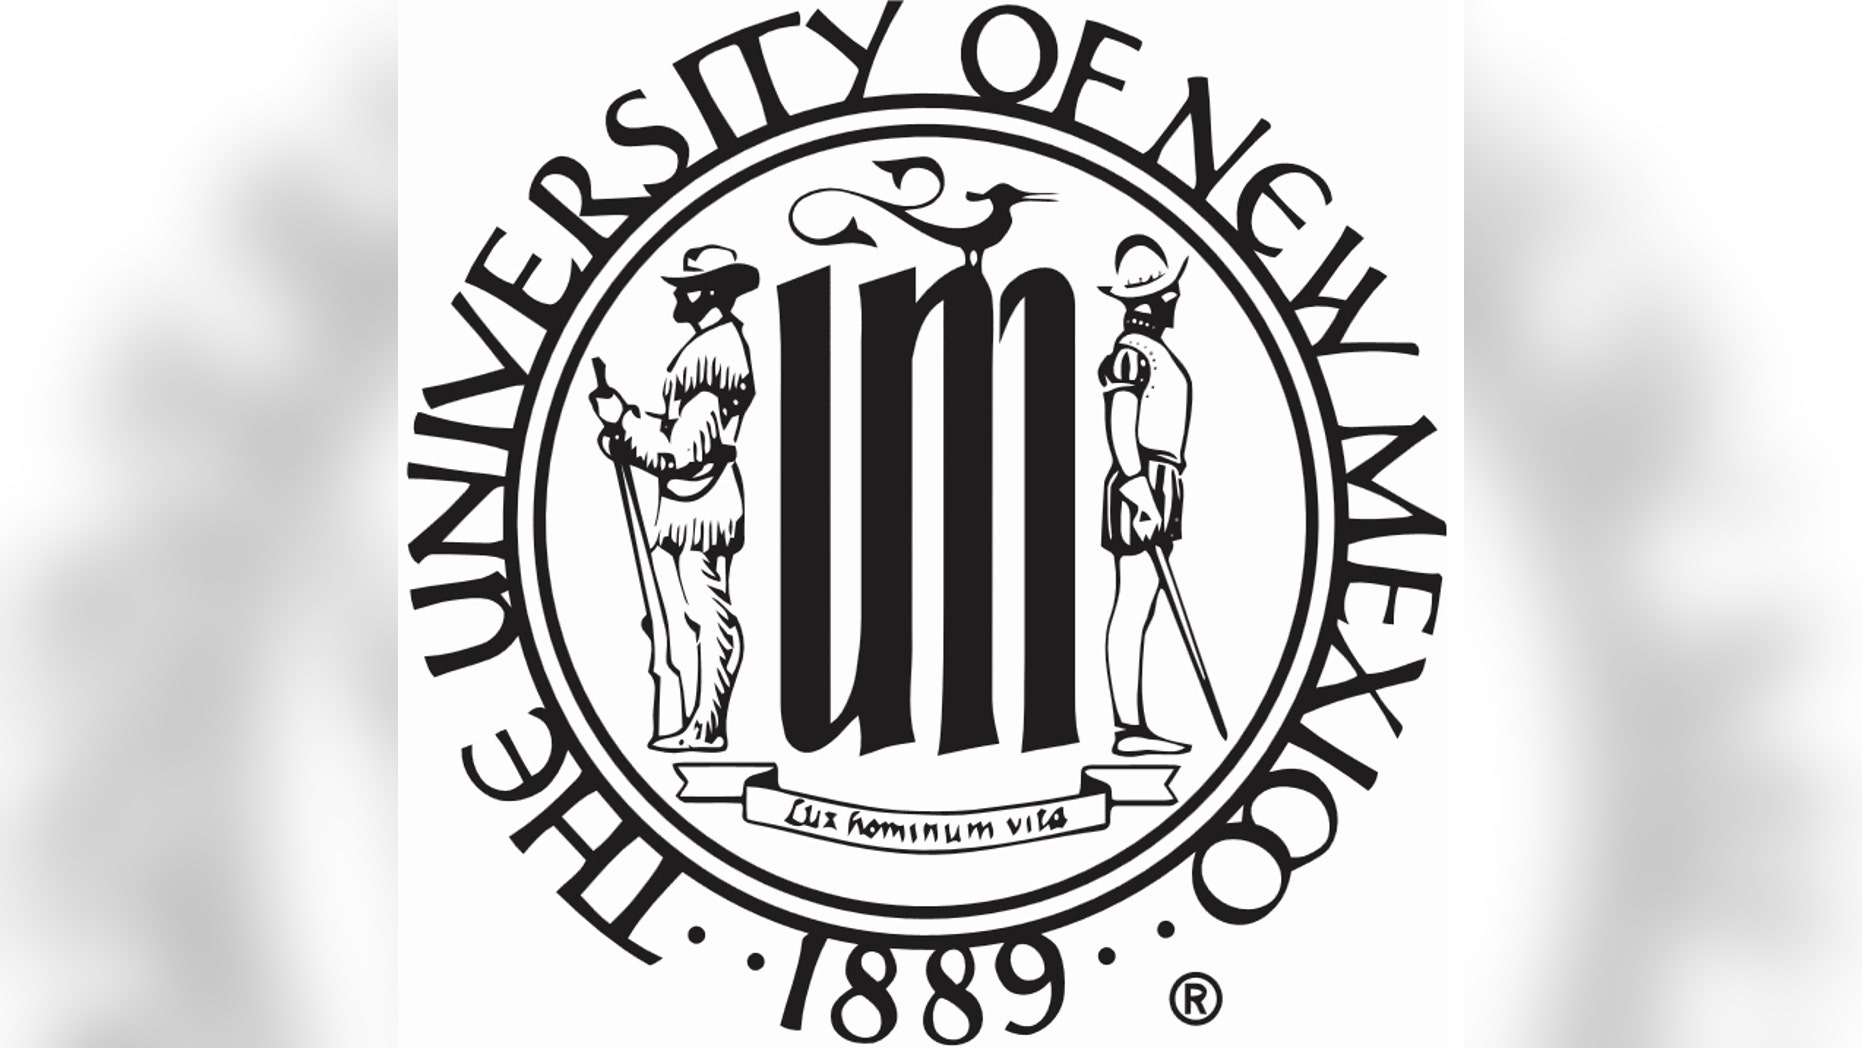 The University of New Mexico seal is coming under fire from some students.